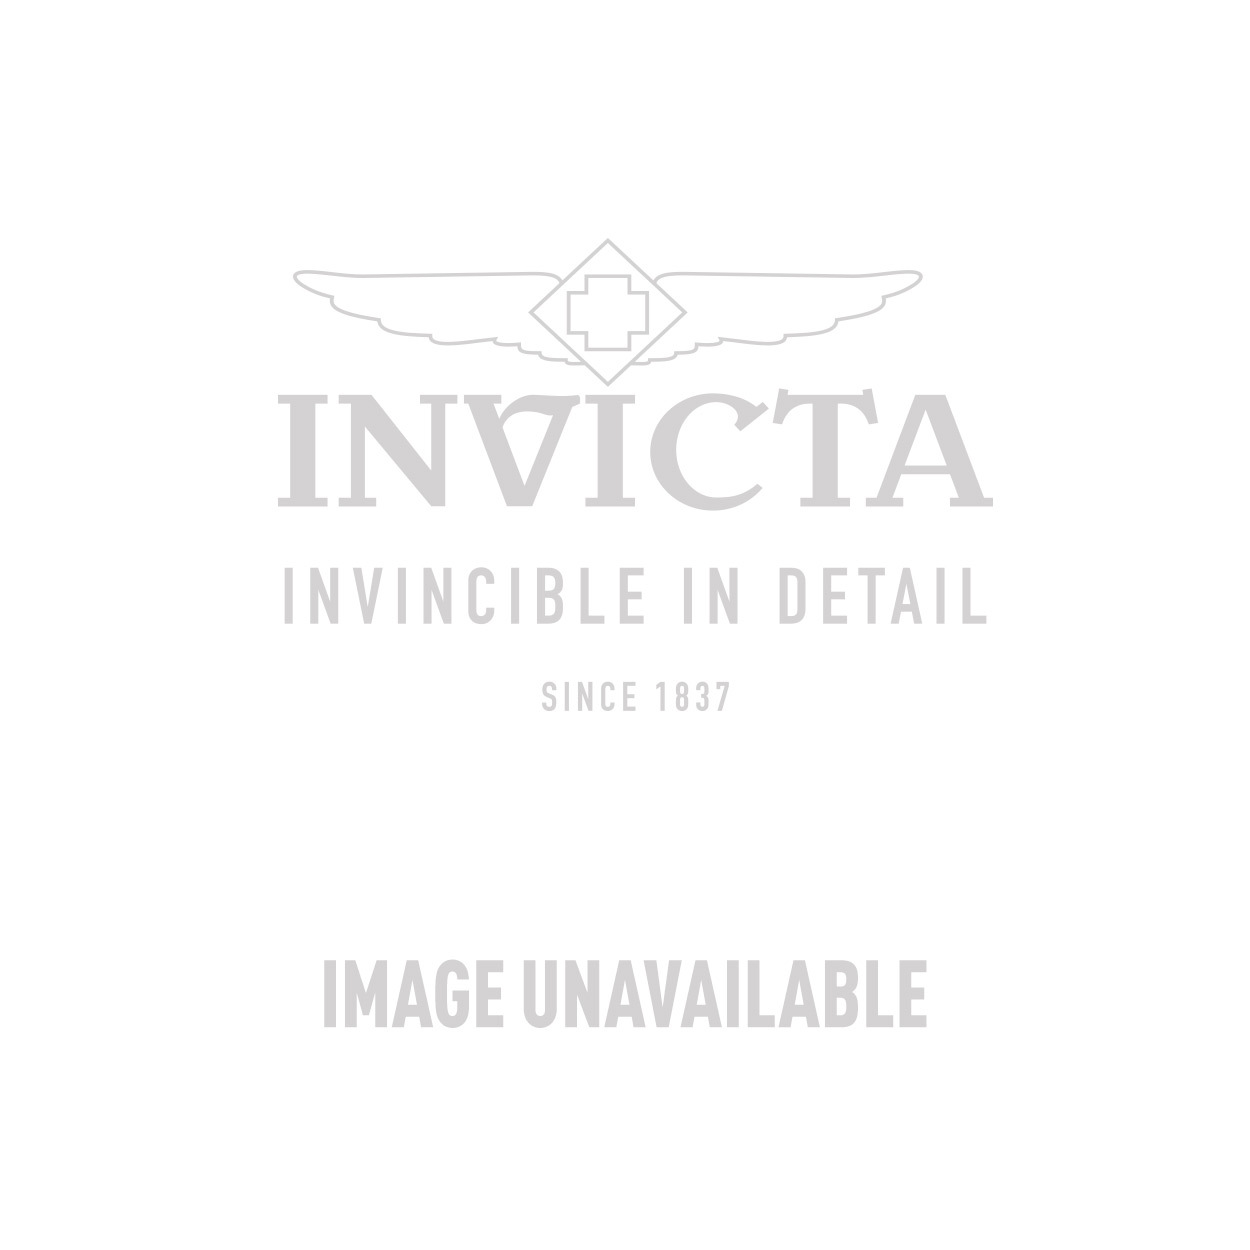 Invicta Corduba Quartz Watch - Stainless Steel case with Steel, Red tone Stainless Steel, Polyurethane band - Model 6597